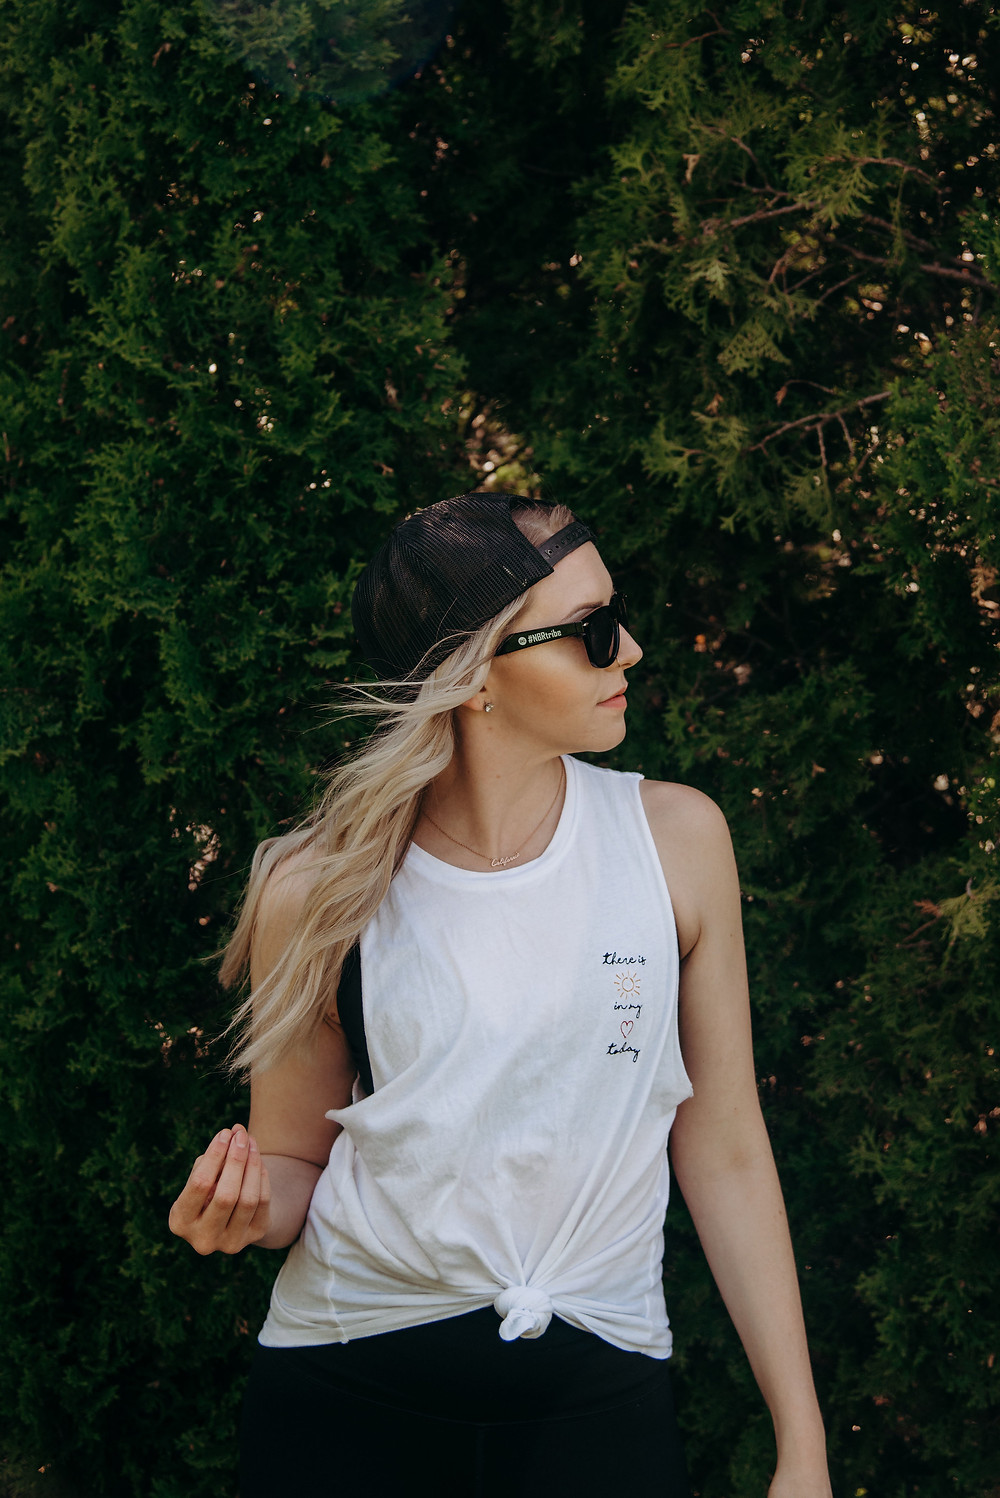 Hair Extensions, Hair Extension Specialist, Extensions, Fitness, Fitness Wear, Workout Clothes, Snap Back, Trucker Hat, Muscle Tank, Long Hair, Birdie Bee Brand, Birdie Bee, NBR Extensions, Natural Beaded Row Extensions,